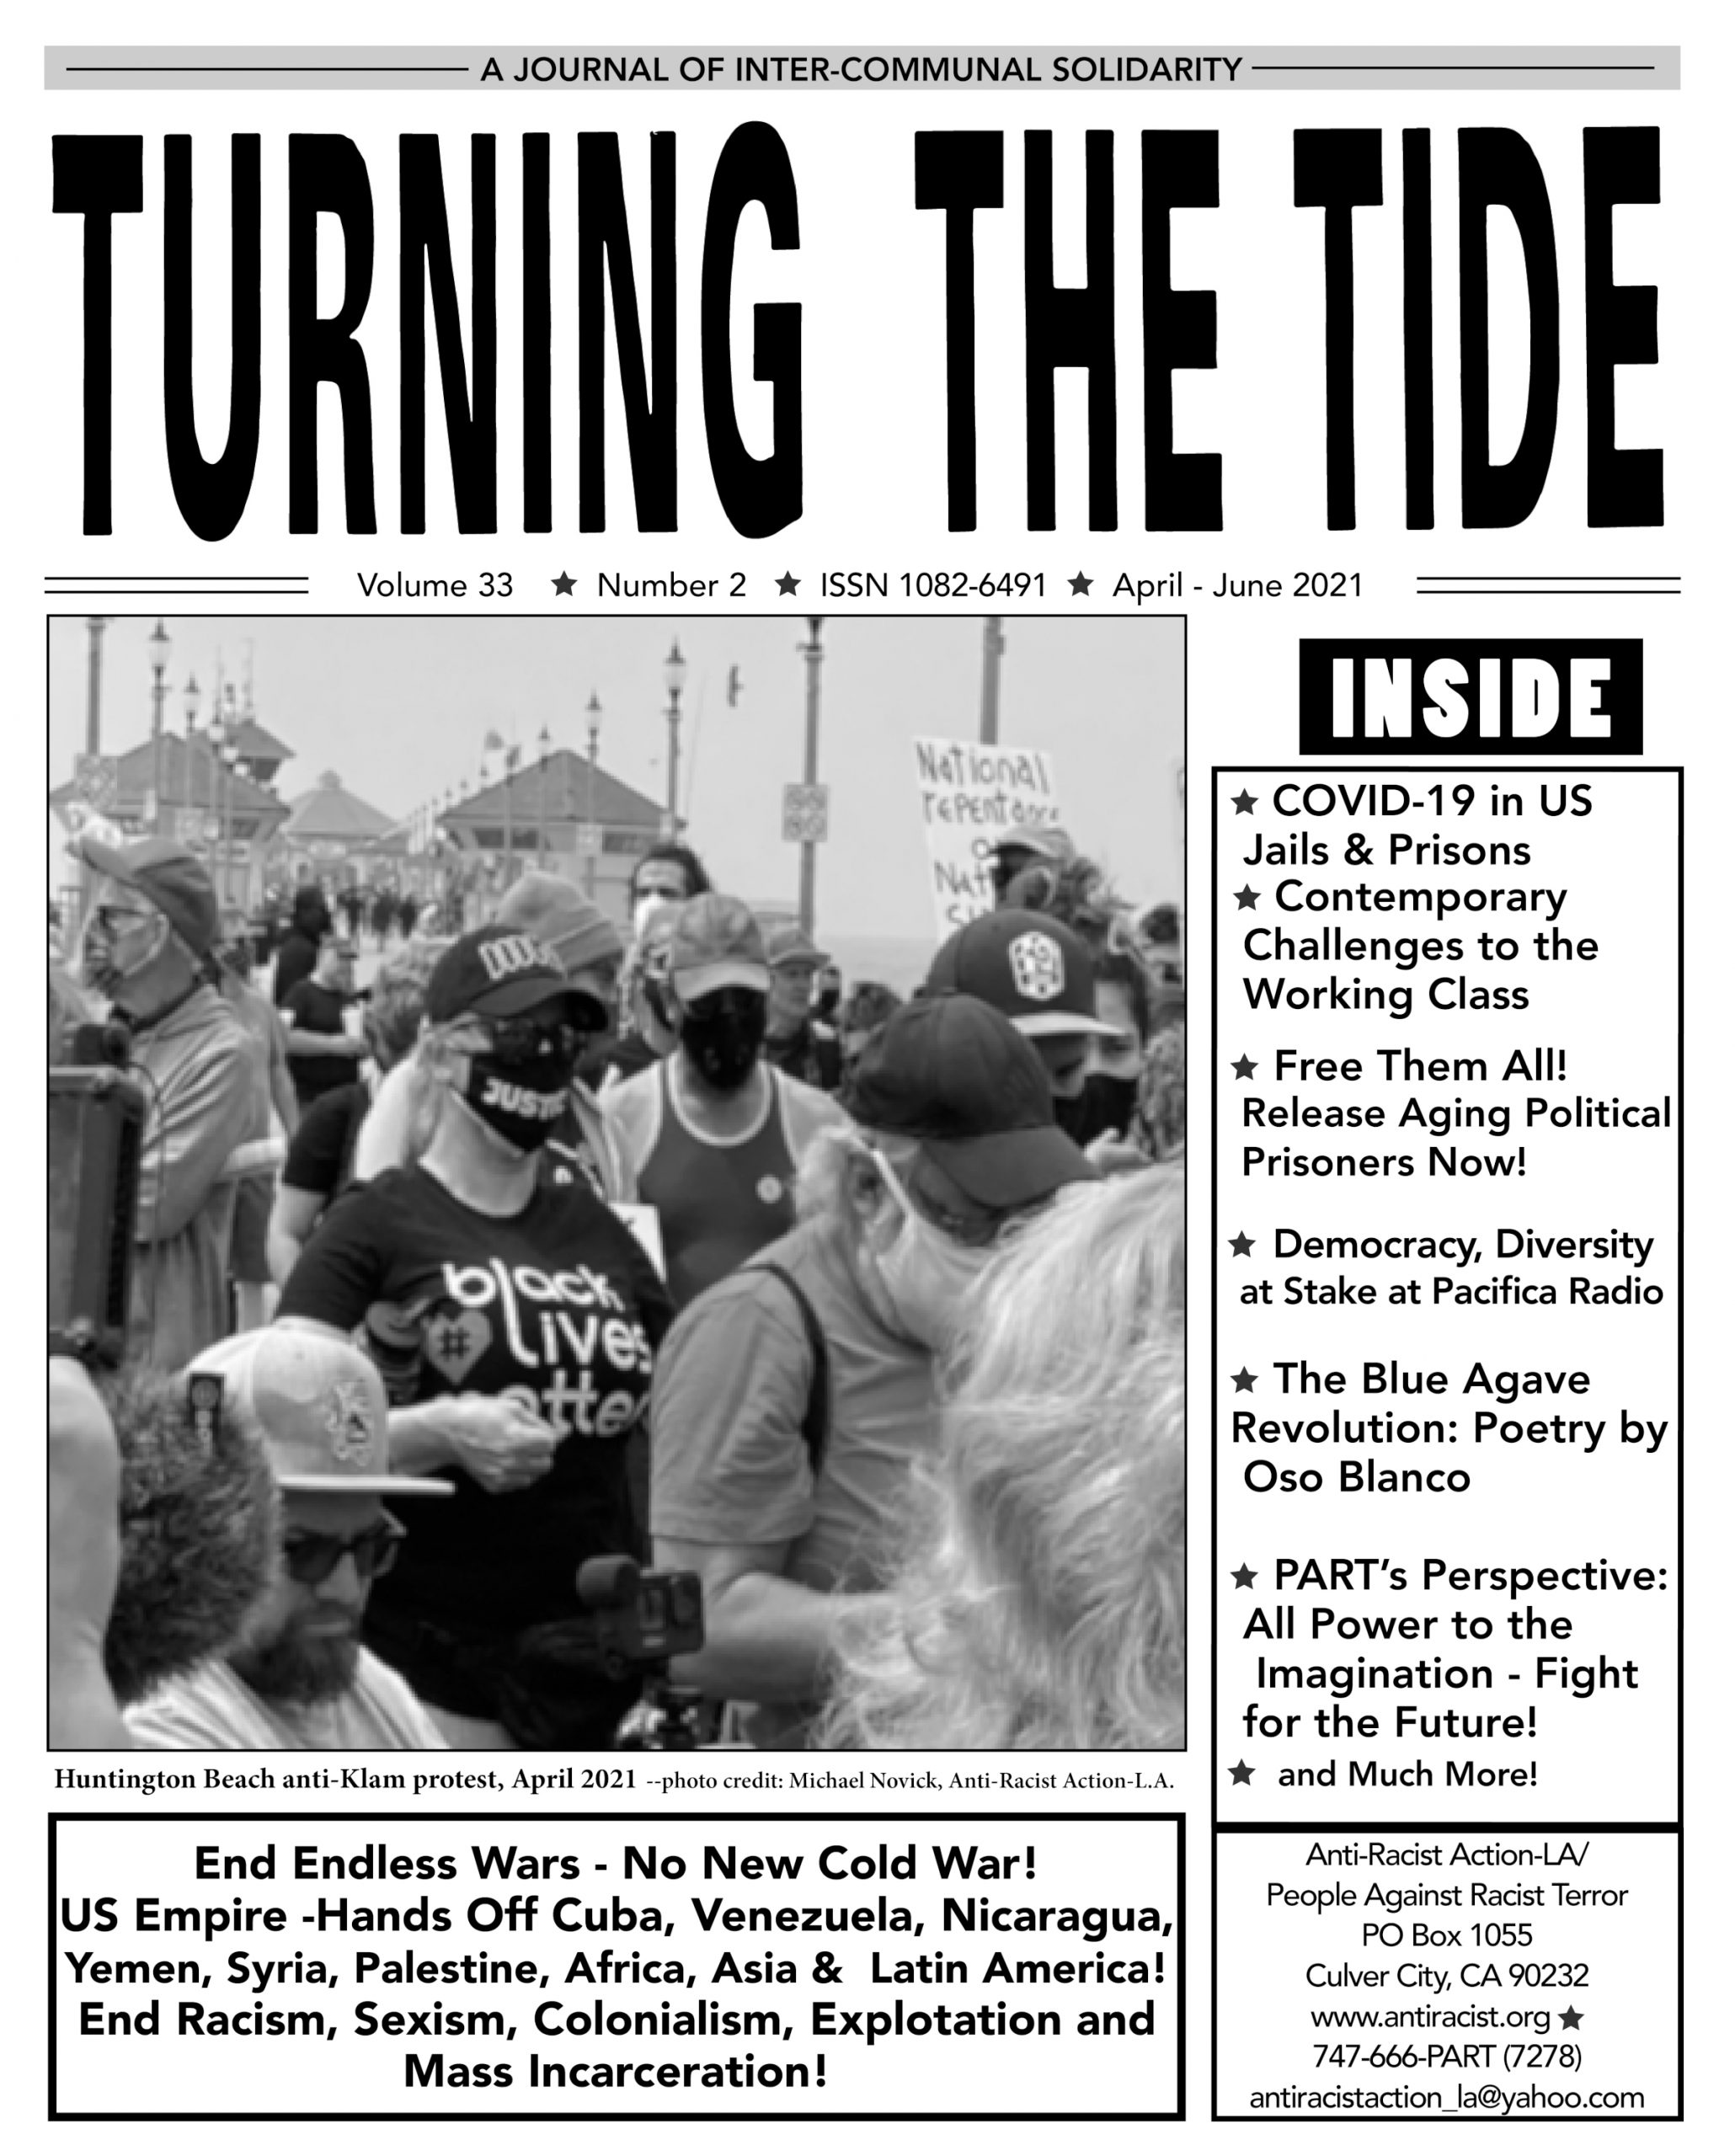 PDF of April-June 2021 issue of TTT, Vol 33 #2